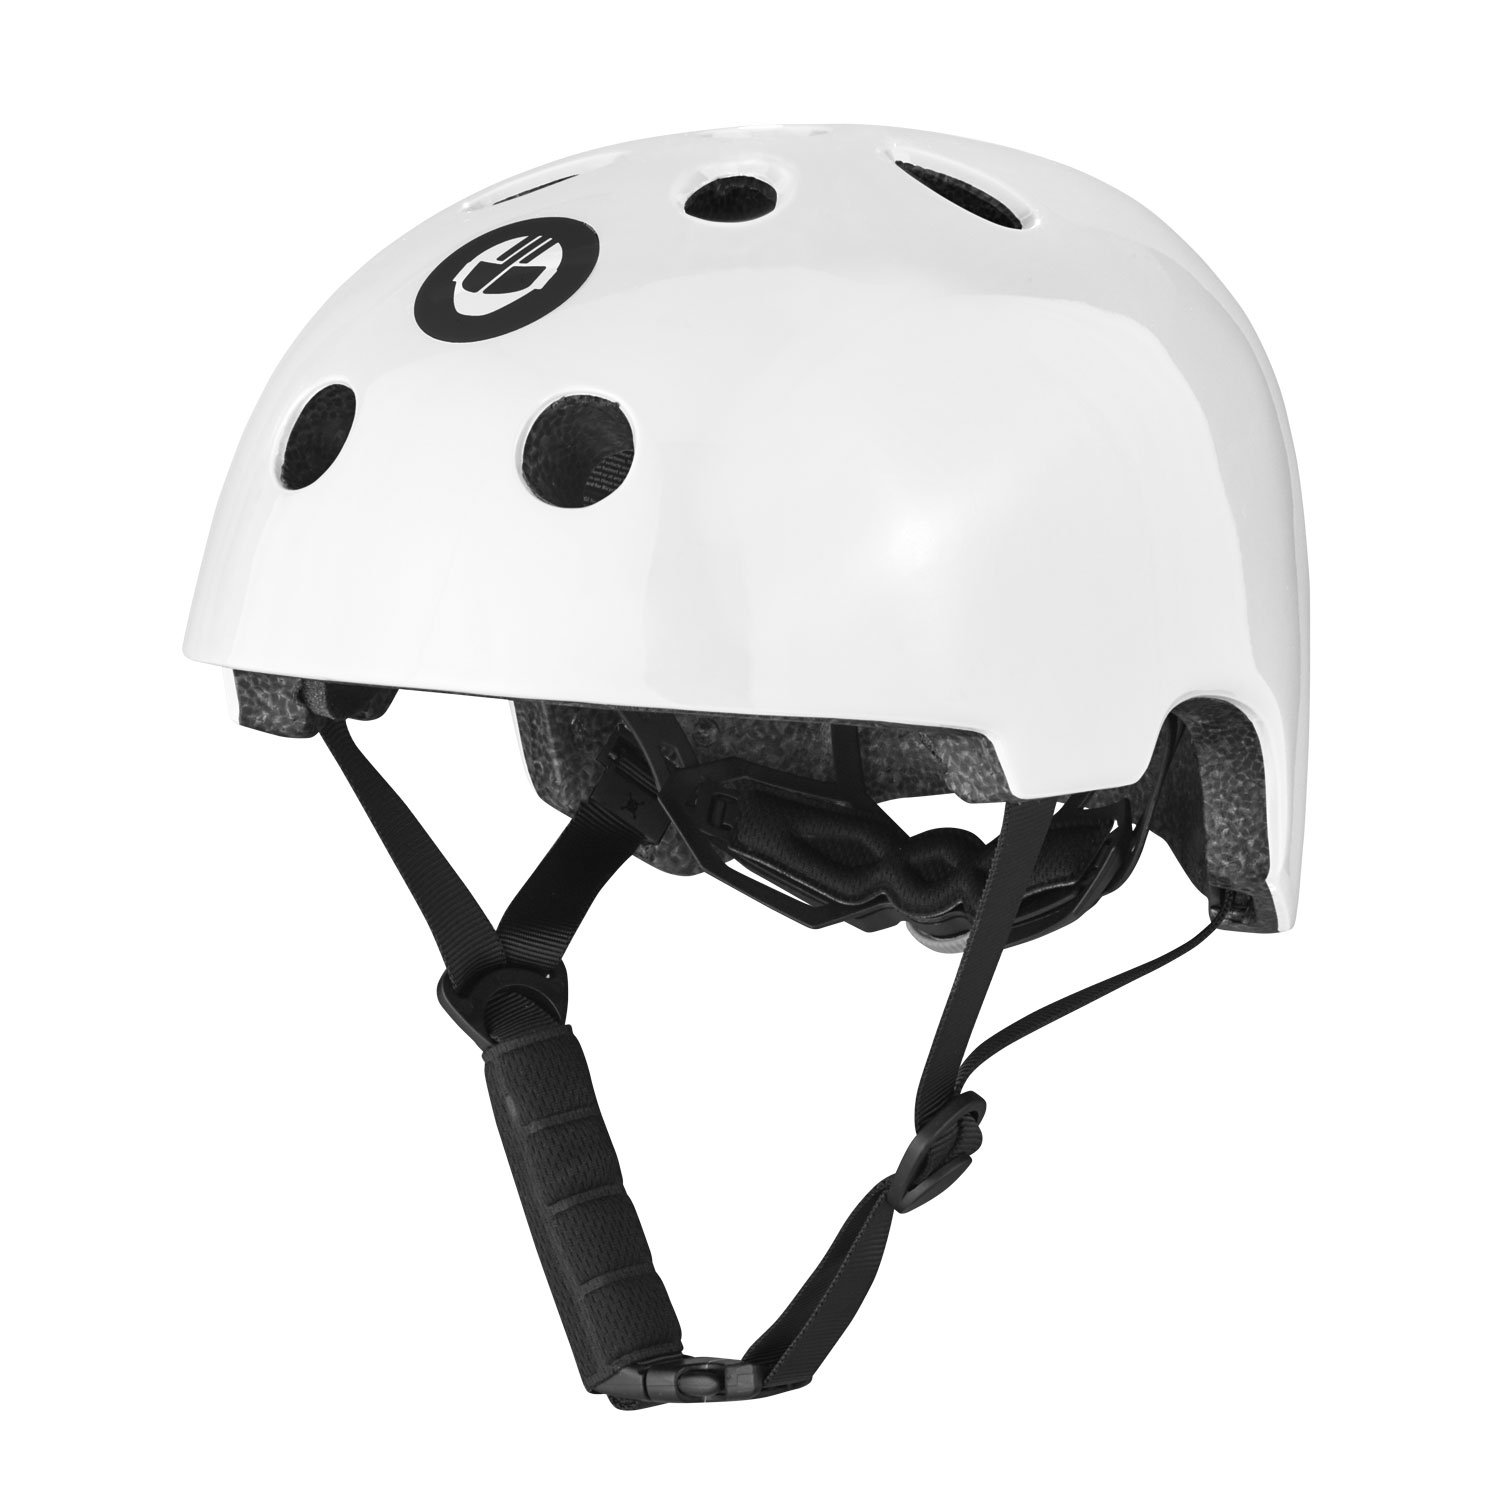 GOTRAX Multi-Sport Skateboard Scooter and Bike Helmet (White, Medium)